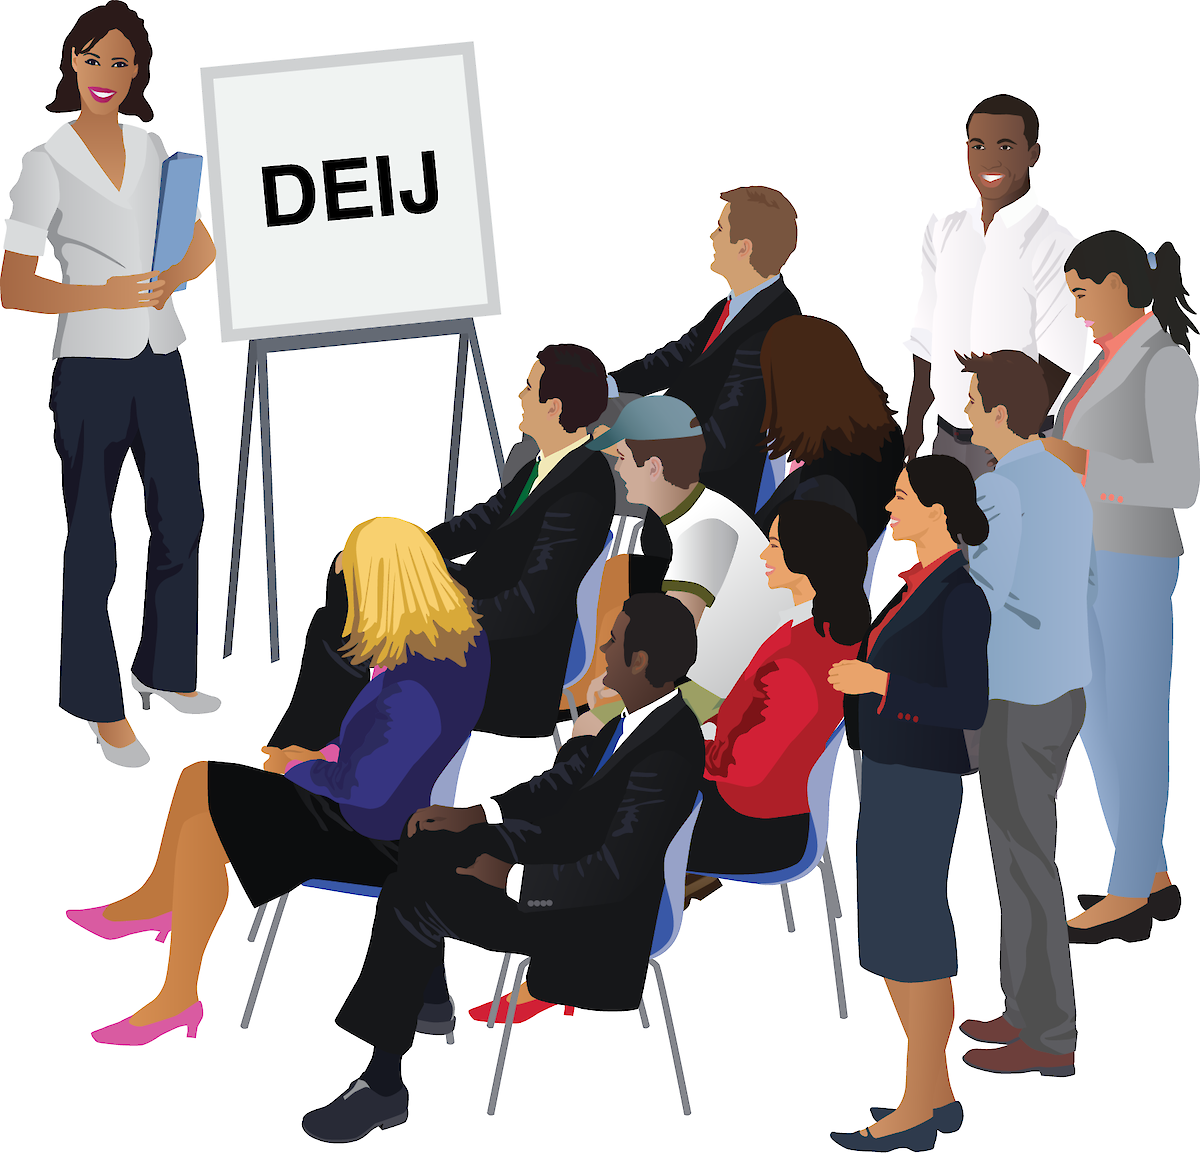 IAN symbol of a DEIJ presentation being delivered to a diverse audience of different backgrounds.